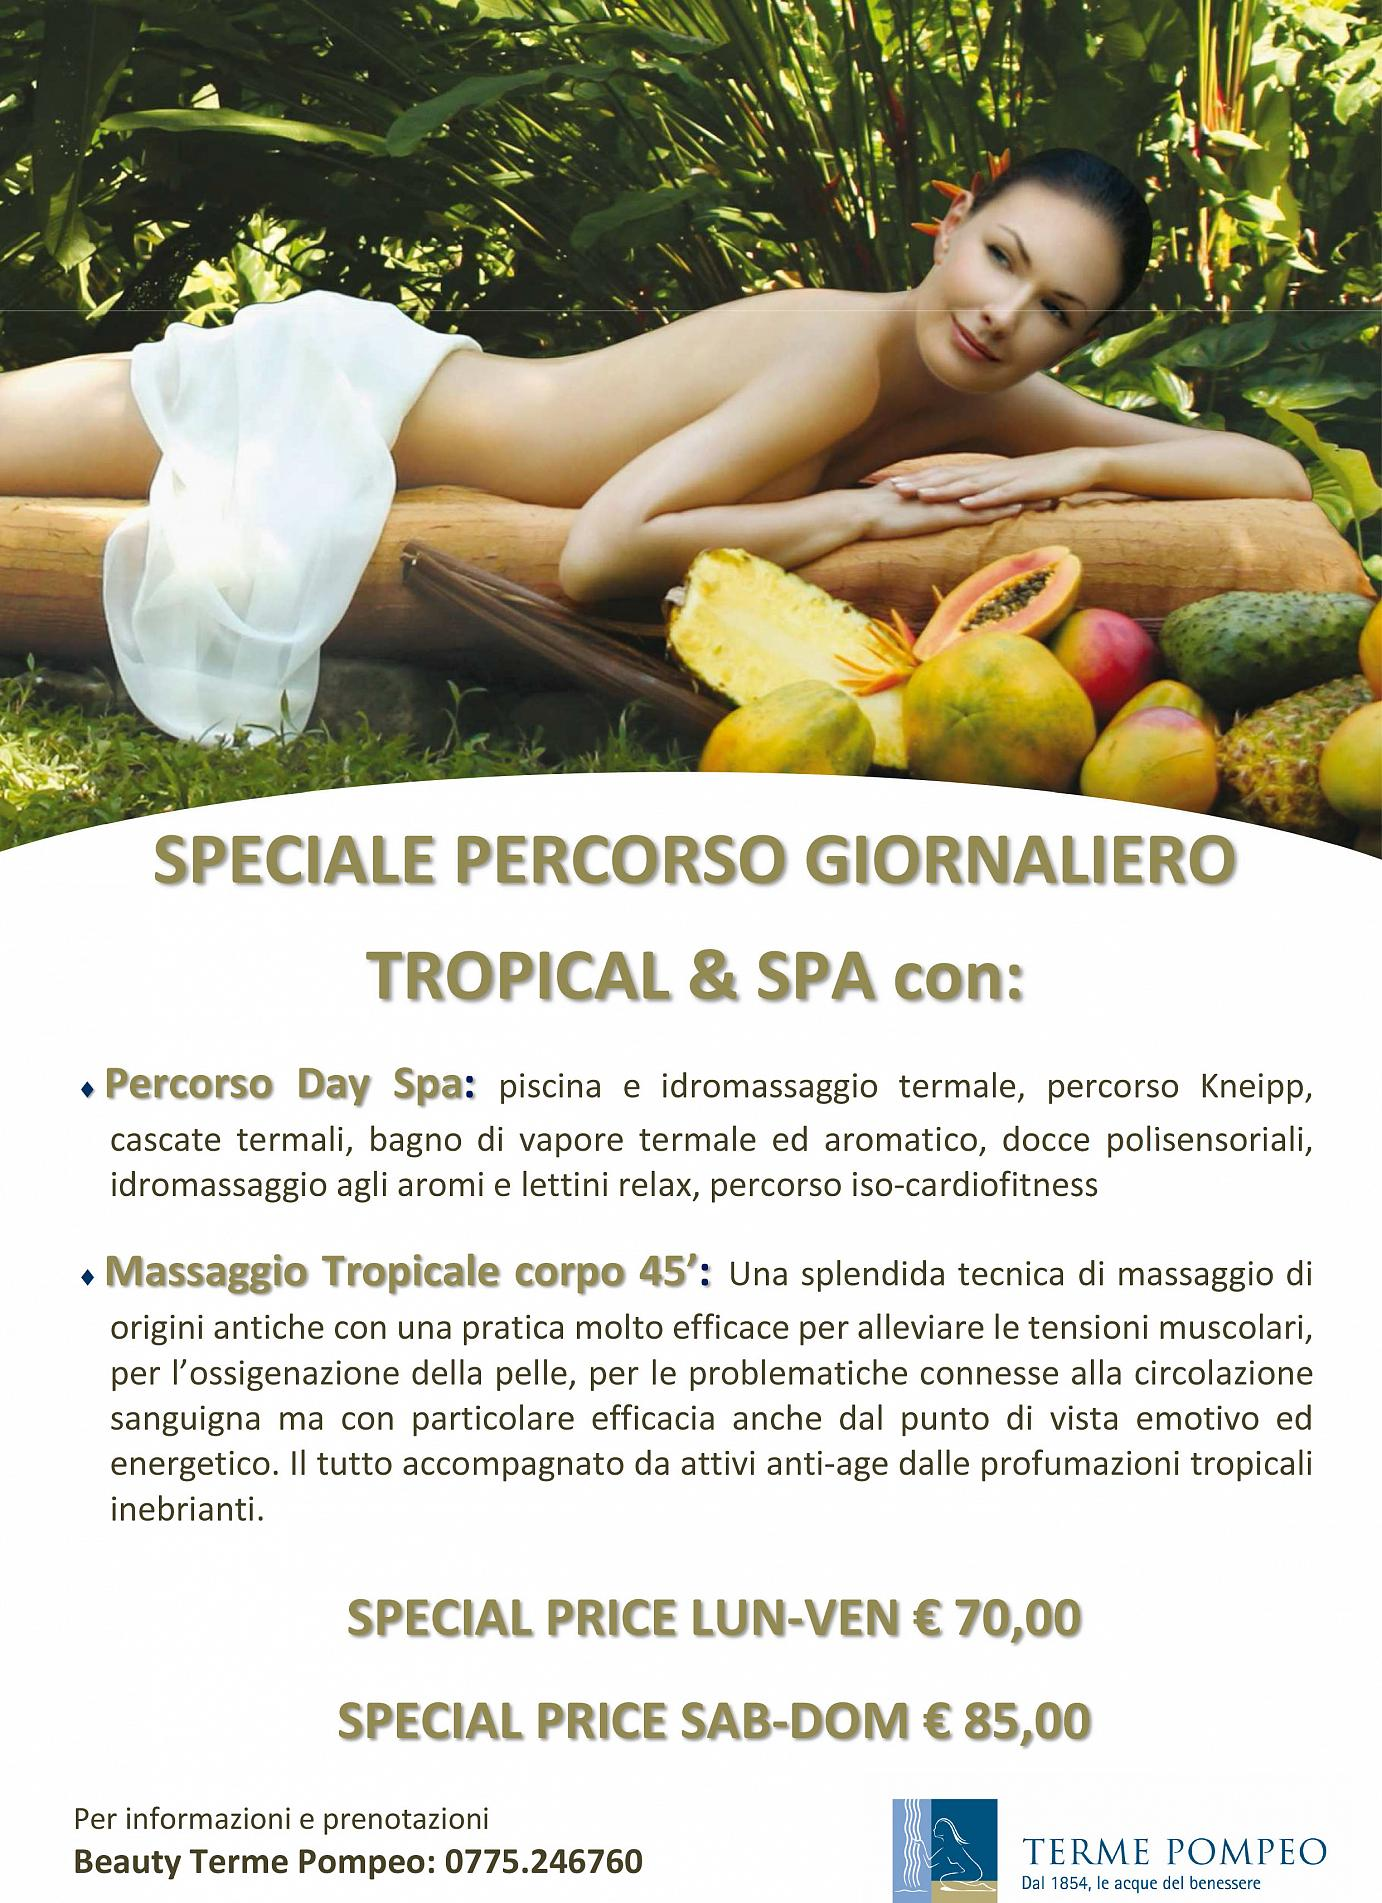 Percorso Day Tropical Spa